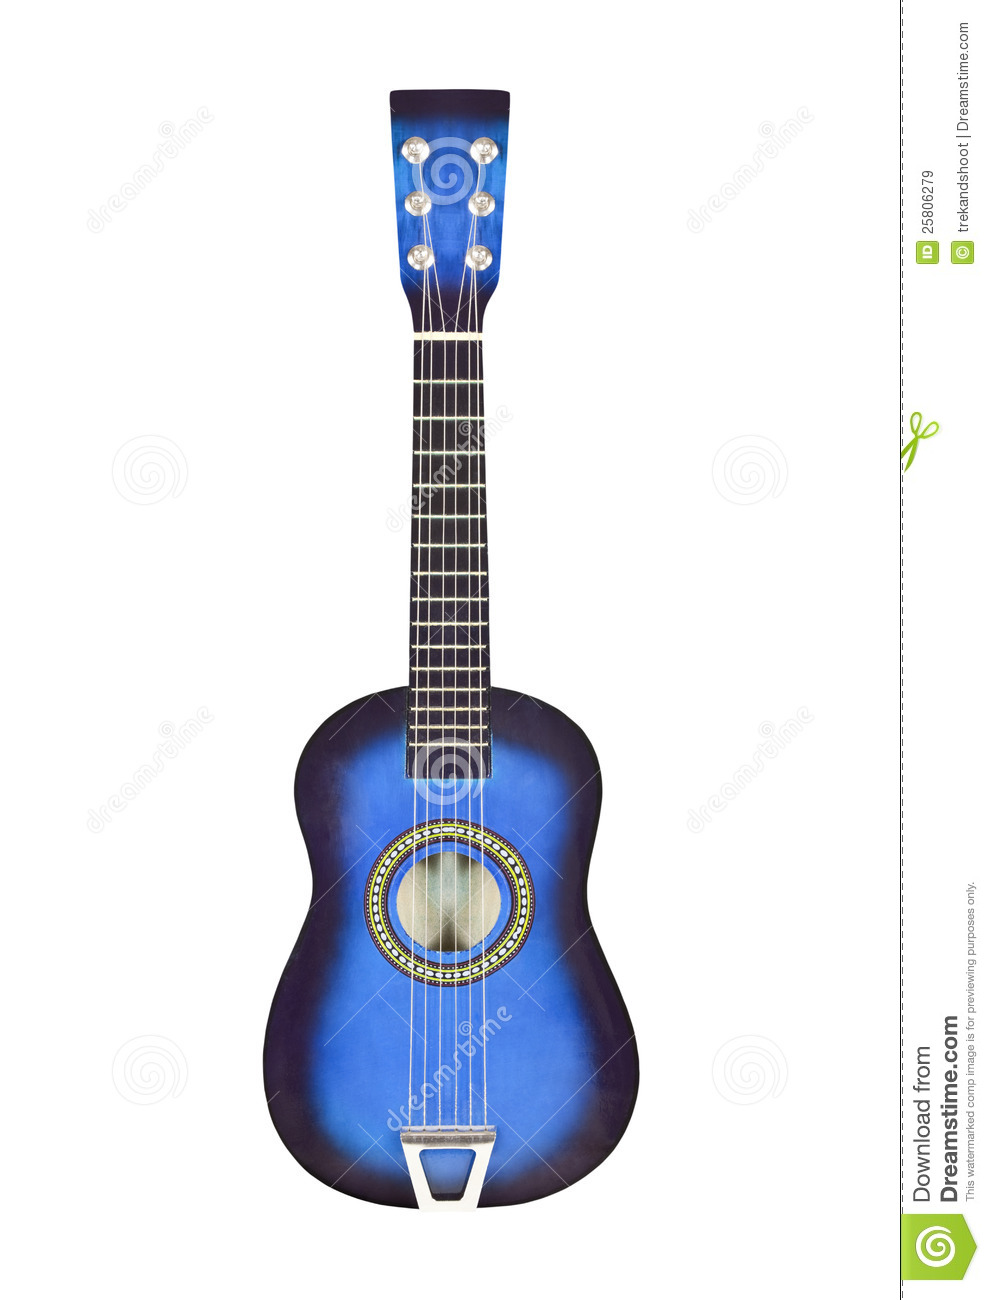 blue toy ukulele size guitar isolated royalty free stock images image 25806279. Black Bedroom Furniture Sets. Home Design Ideas